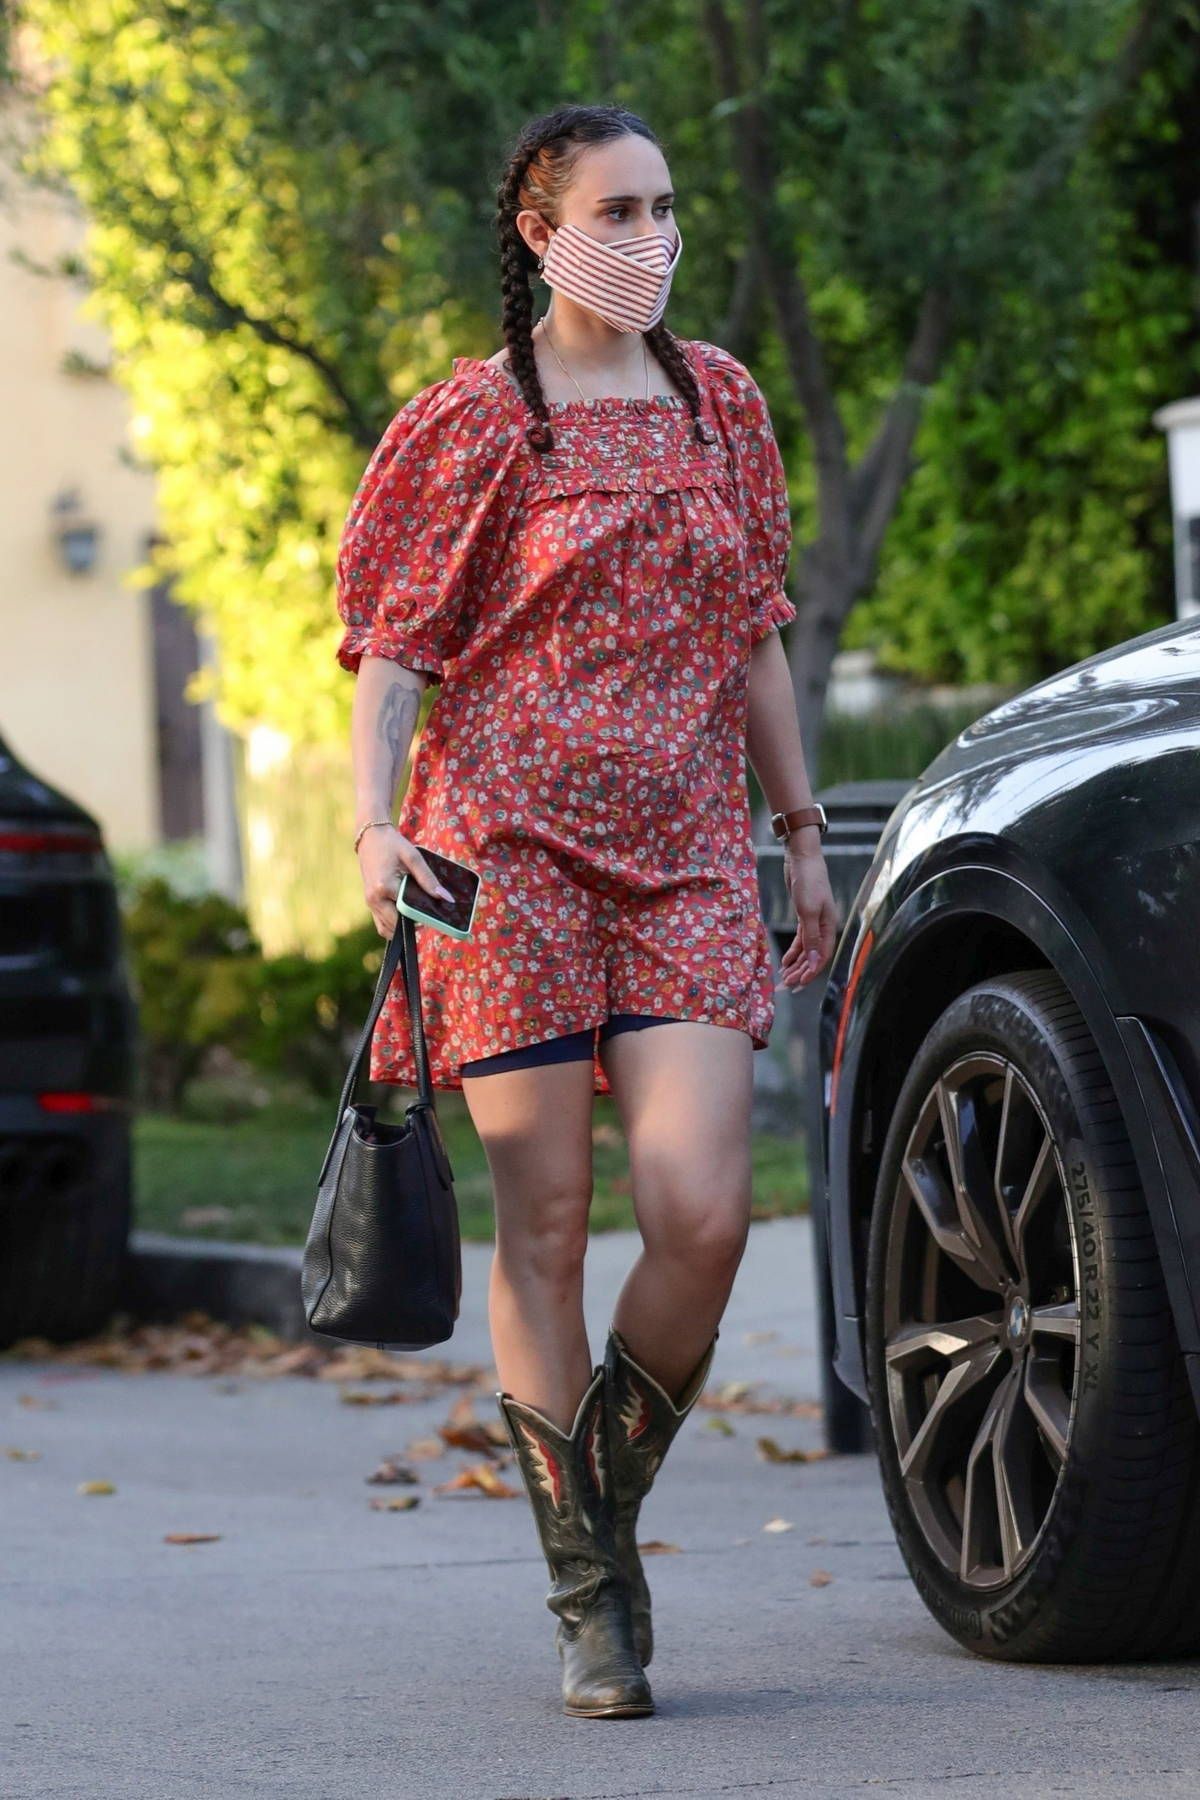 Rumer Willis leaves her late afternoon Pilates class in a floral print dress and cowboy boots in West Hollywood, California